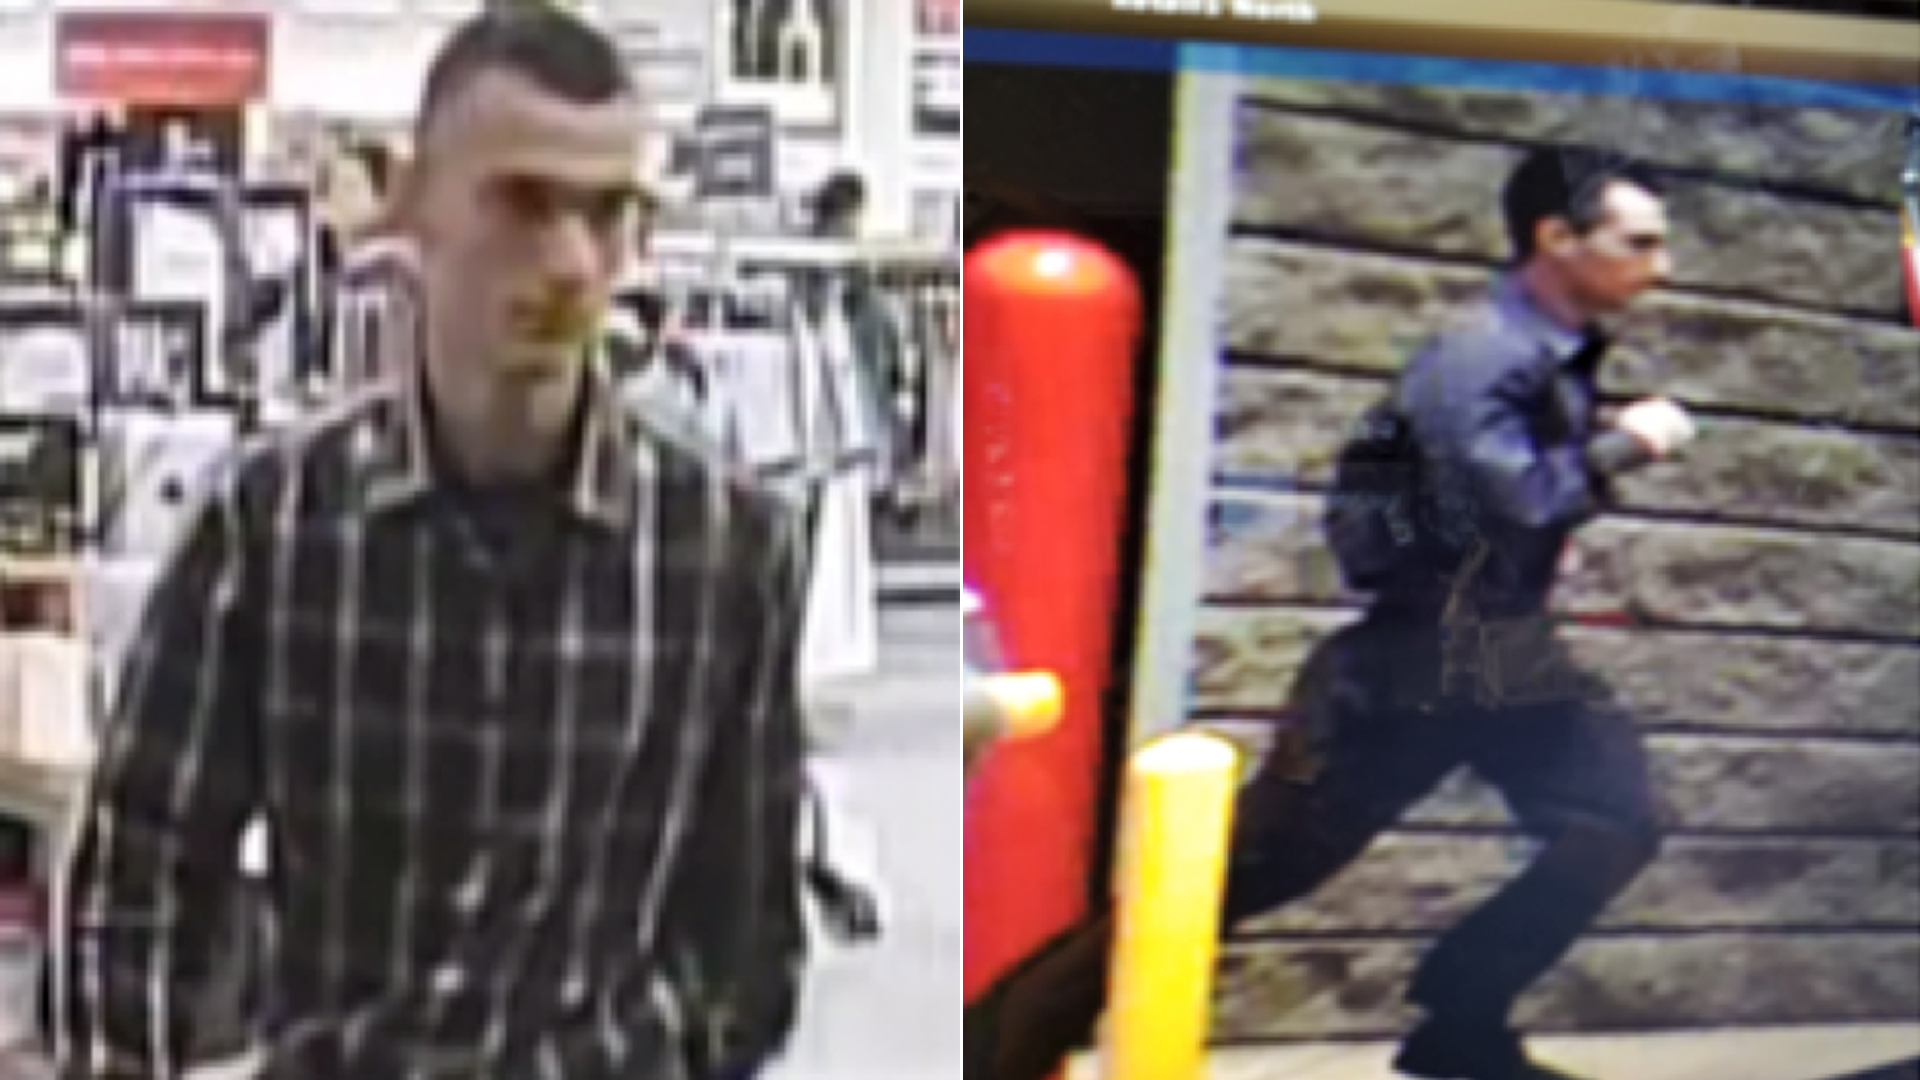 A man believed to have assaulted female shoppers in west San Fernando Valley is shown in still images from video surveillance provided by the Los Angeles Police Department on July 19, 2018.